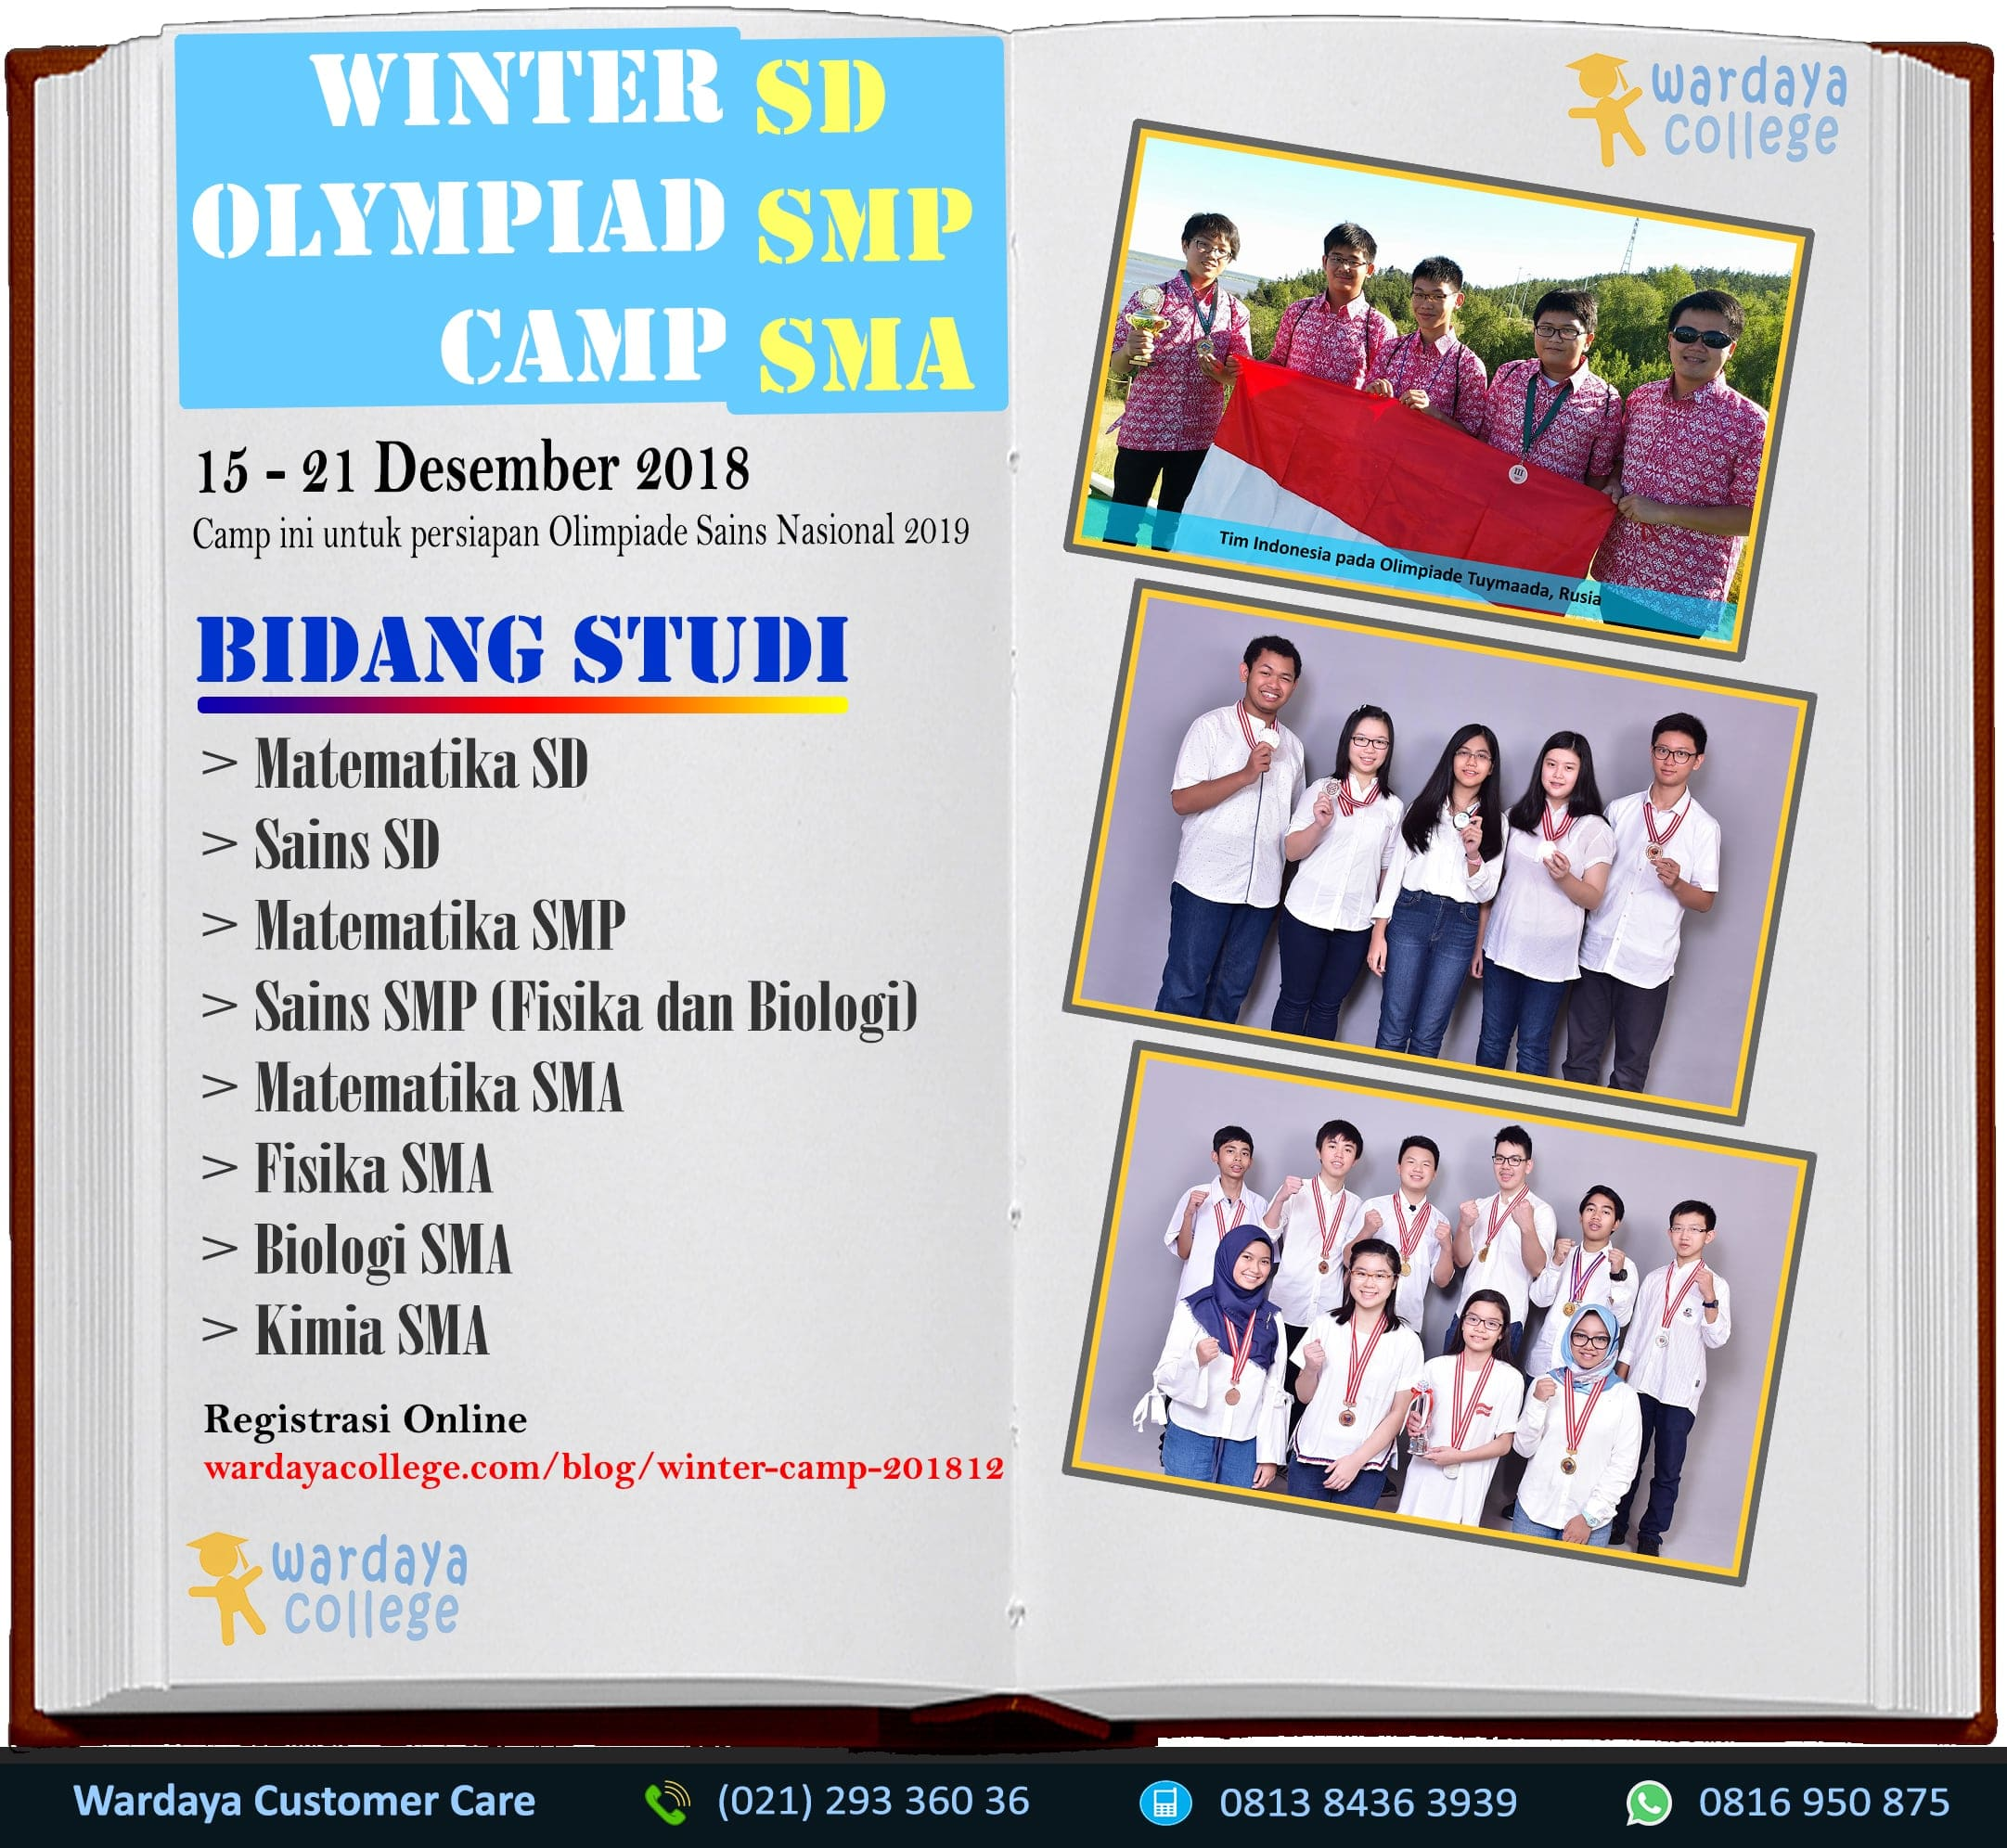 Kelas Olimpiade OSN 2018/2019 - Winter Olympiad Camp